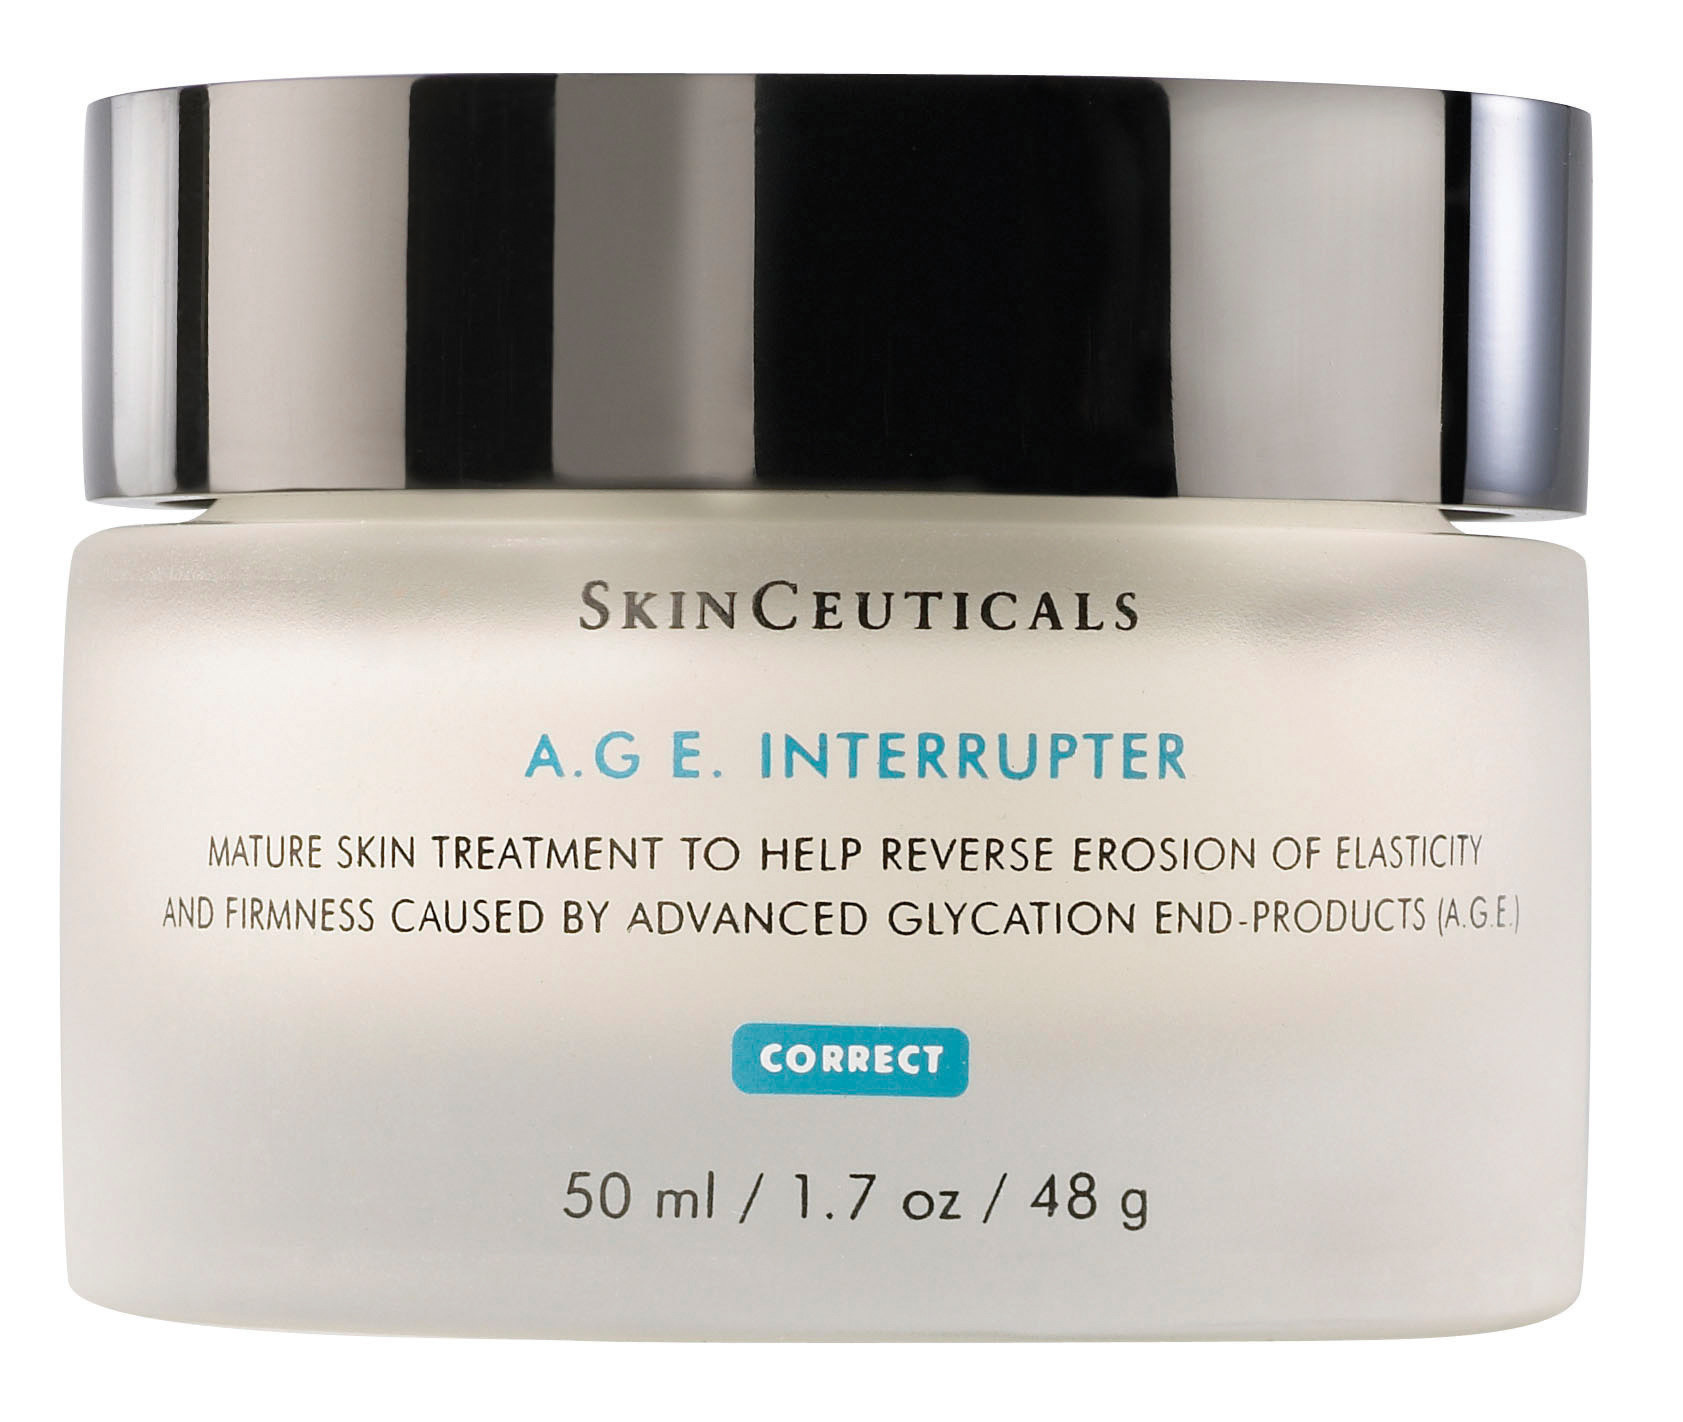 A.G.E. Interrupter 50ml-1